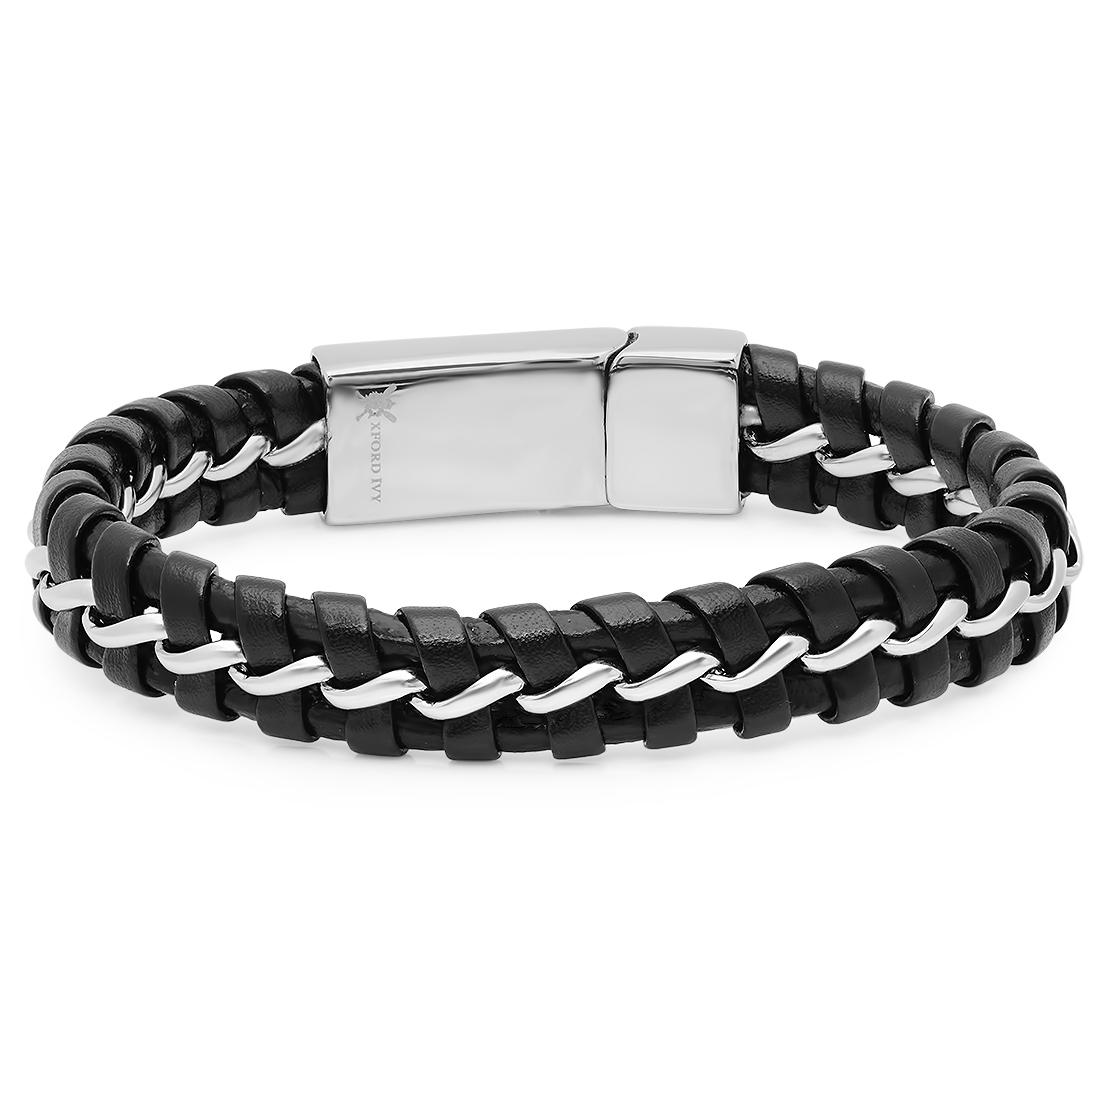 Oxford Ivy Mens Faux Leather and Stainless Steel Bracelet 8 1/2 inches